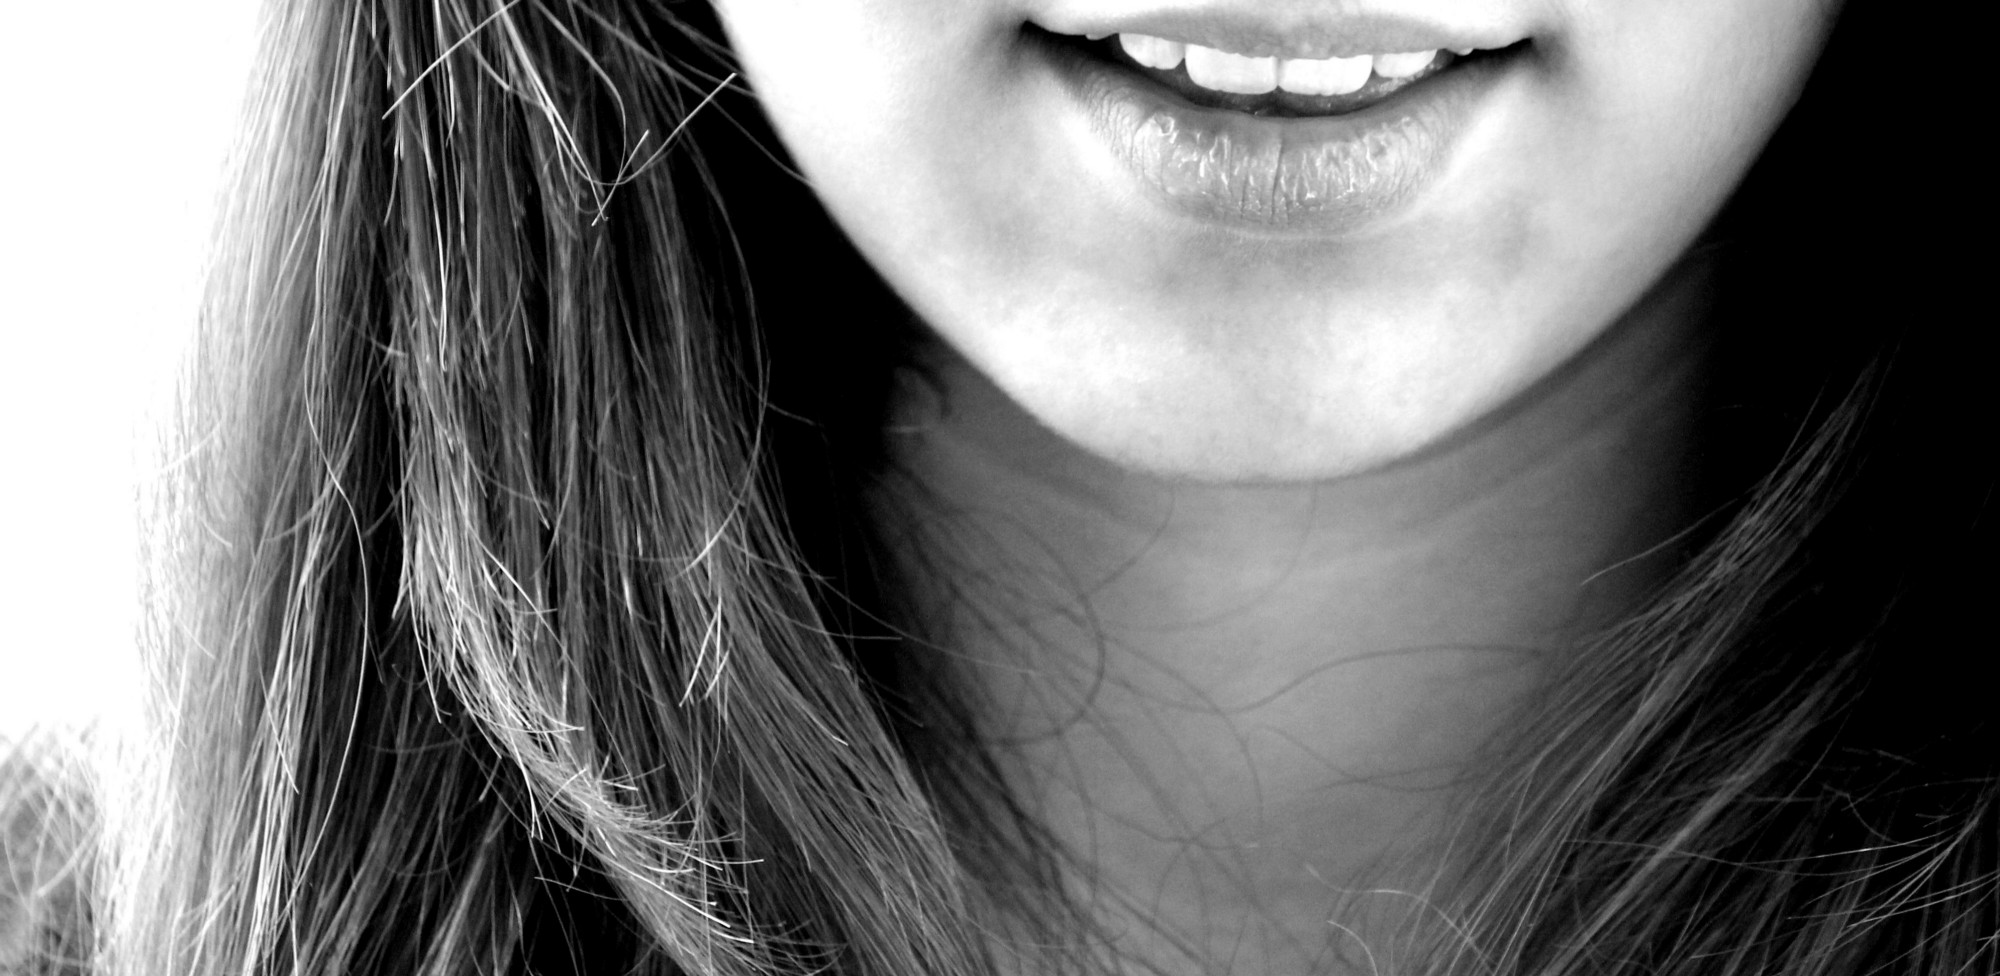 Black-and-white photo of the lower half of a woman's face only showing her mouth, which is smiling